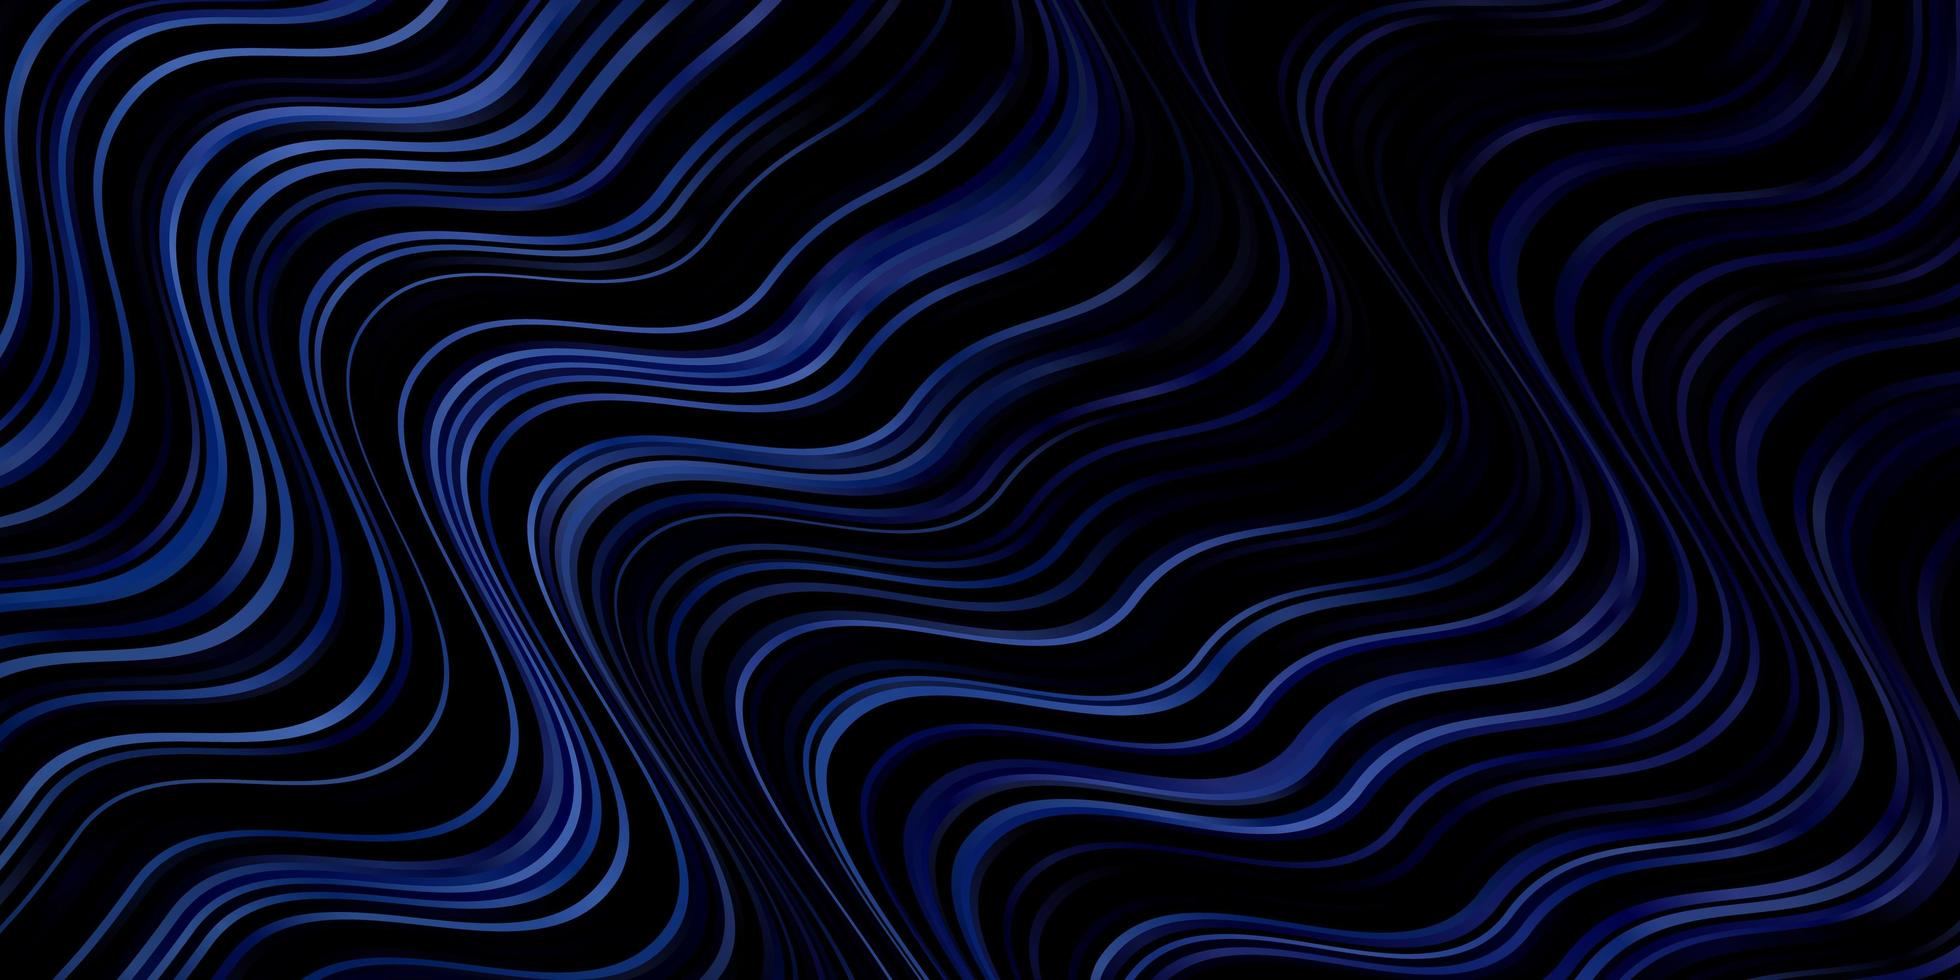 Dark BLUE vector pattern with wry lines